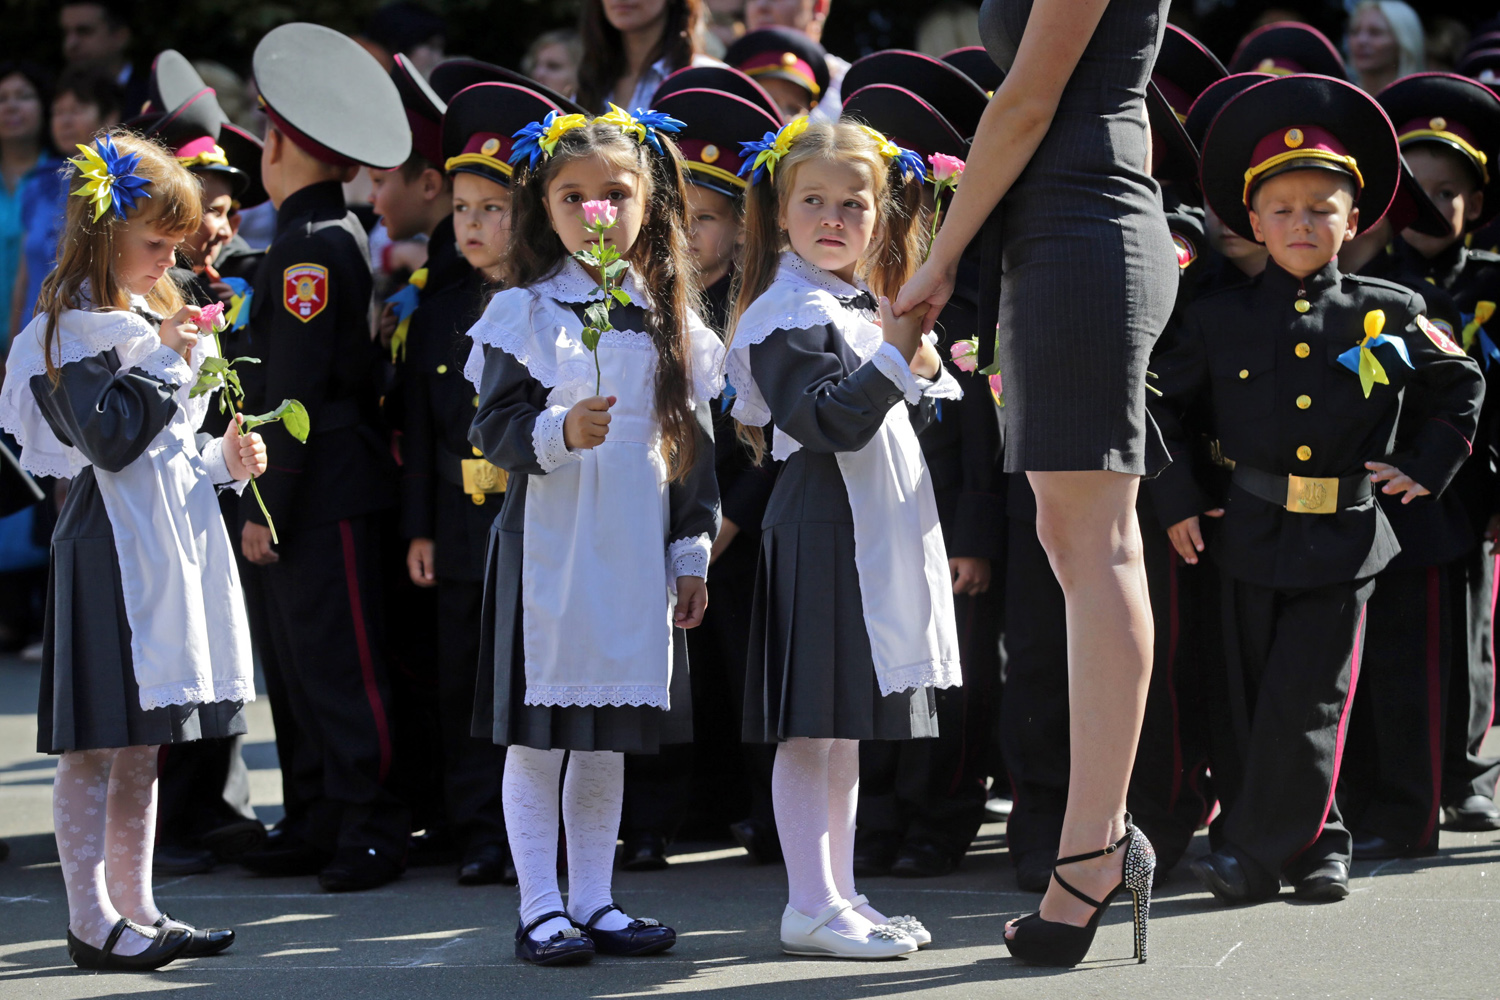 Sept. 1, 2014. Ukrainian girls from cadet's lyceum attend a first day of school, which marks the traditional start of the academic year in Kiev, Ukraine.